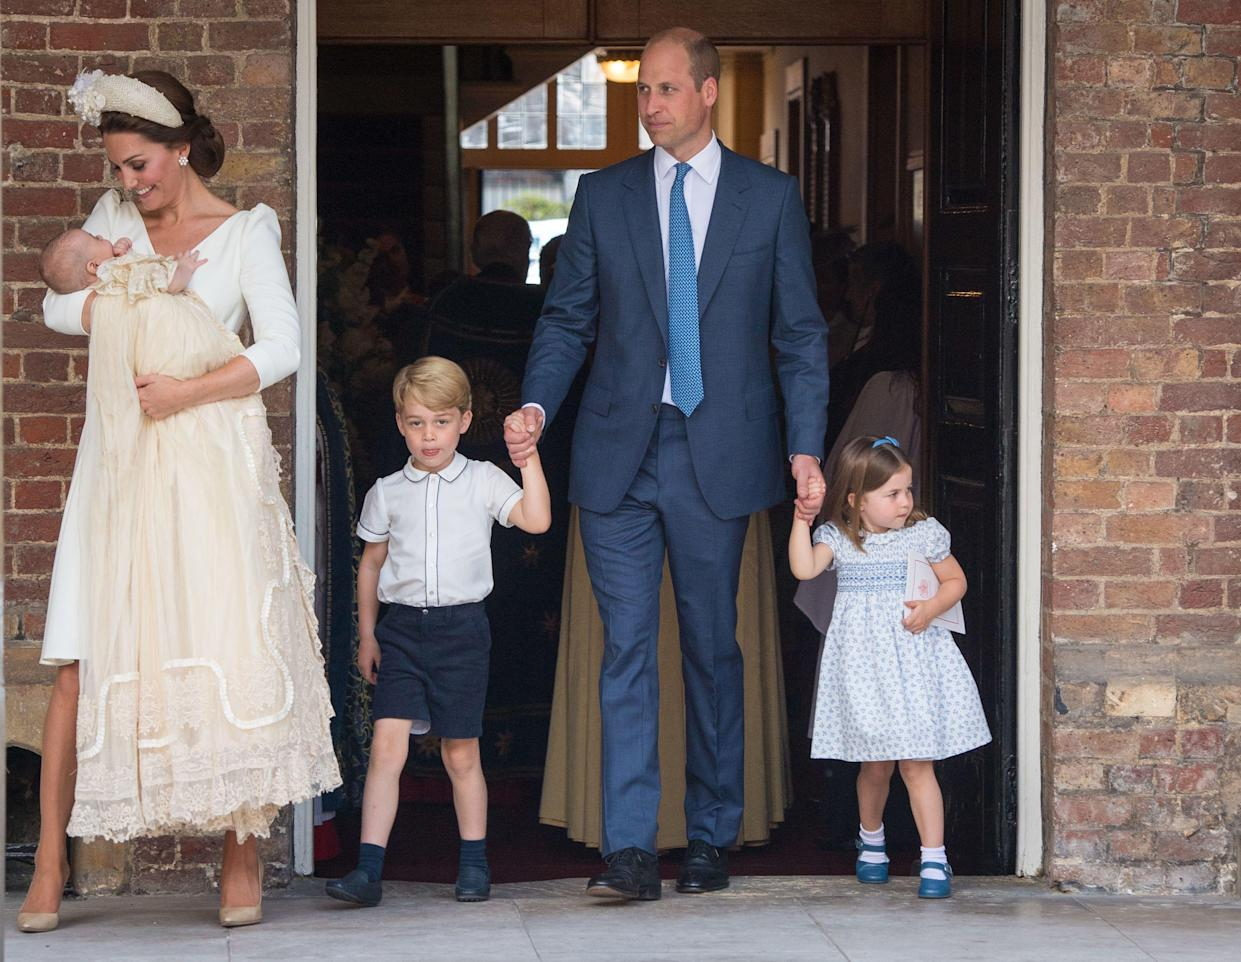 The Queen wants William to enjoy time with his family (Photo: Getty)